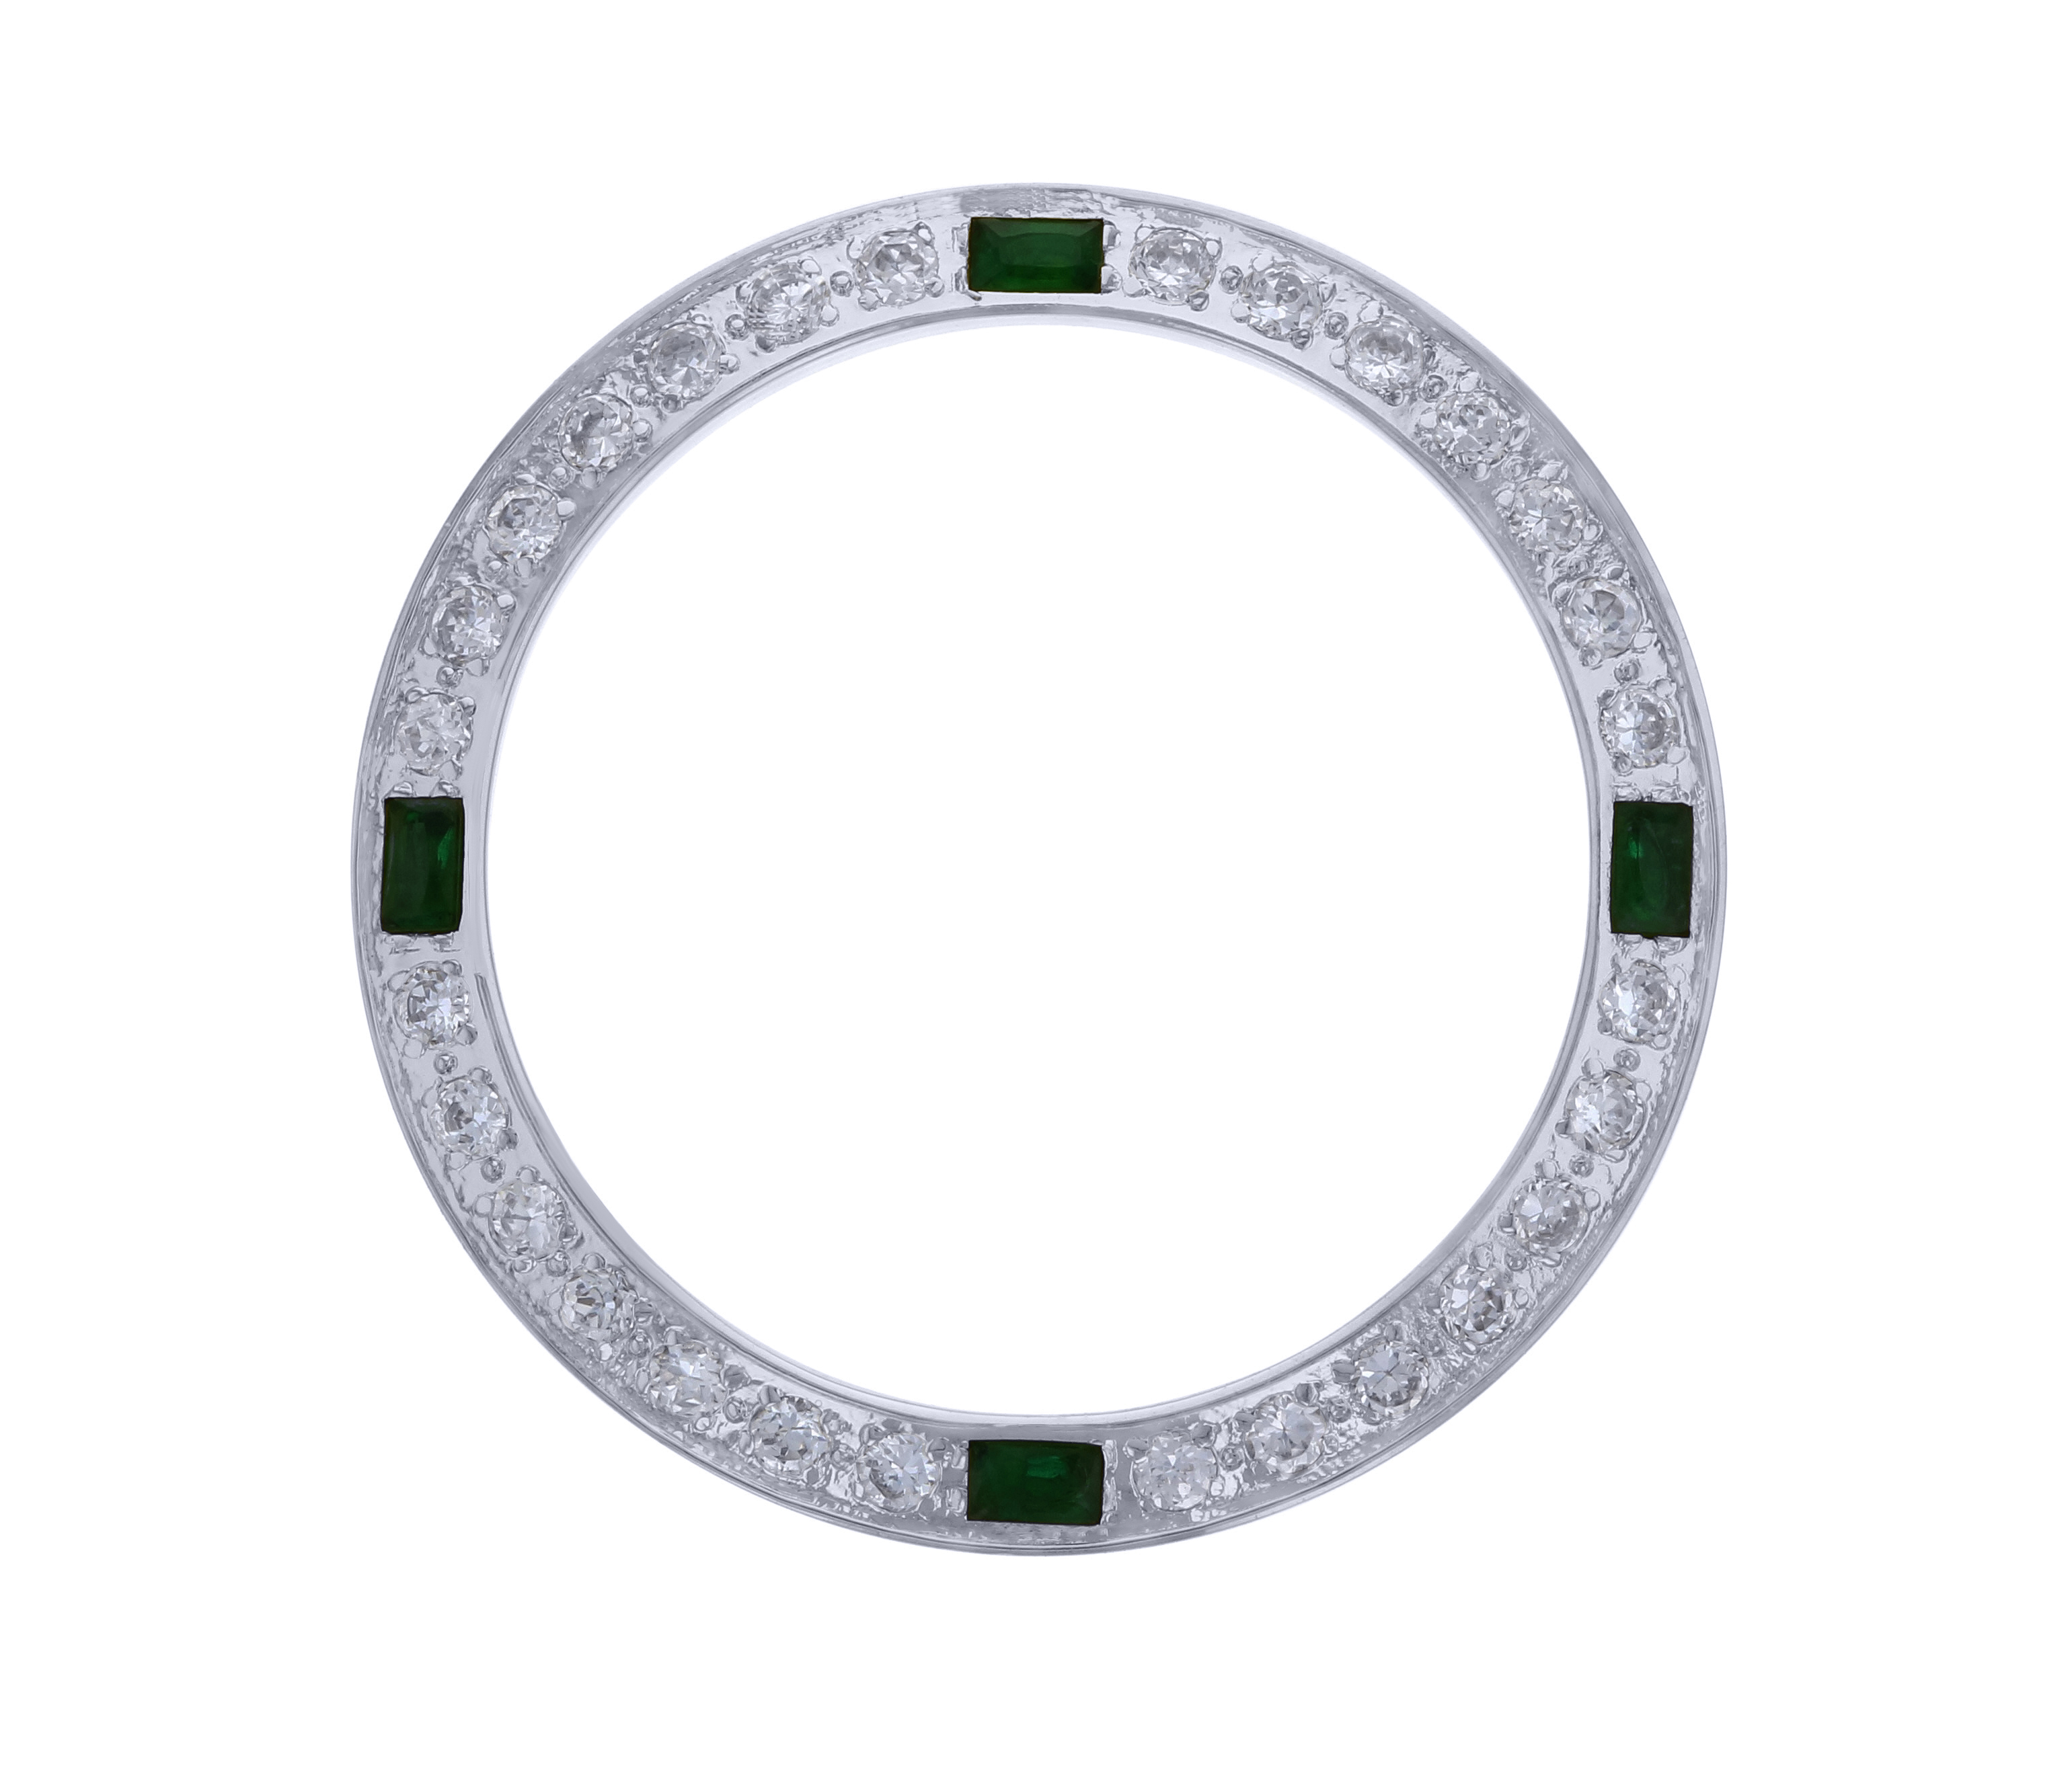 CREATED DIAMOND EMERALD BEZEL FOR 26MM TUDOR PRINCE DATEJUST WATCH LADY WHITE